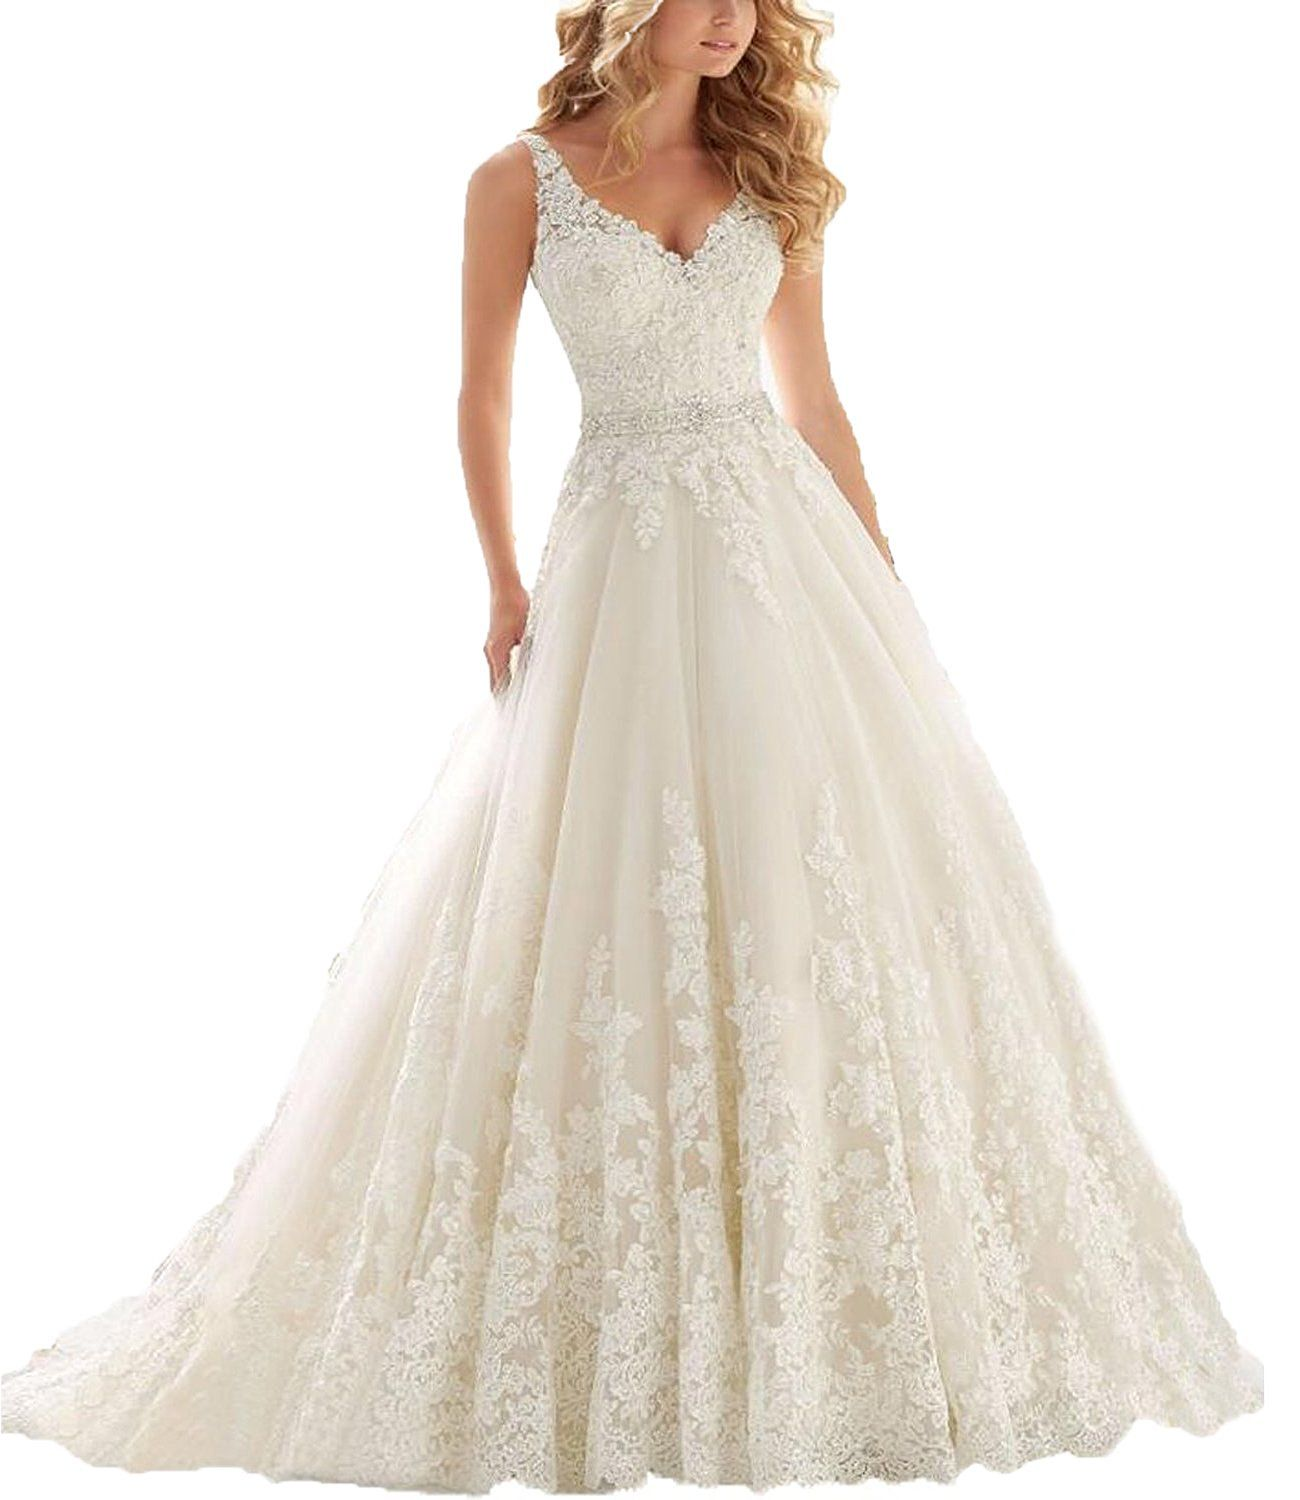 Ellenhouse womenus vneck empire wedding dress lace applique court